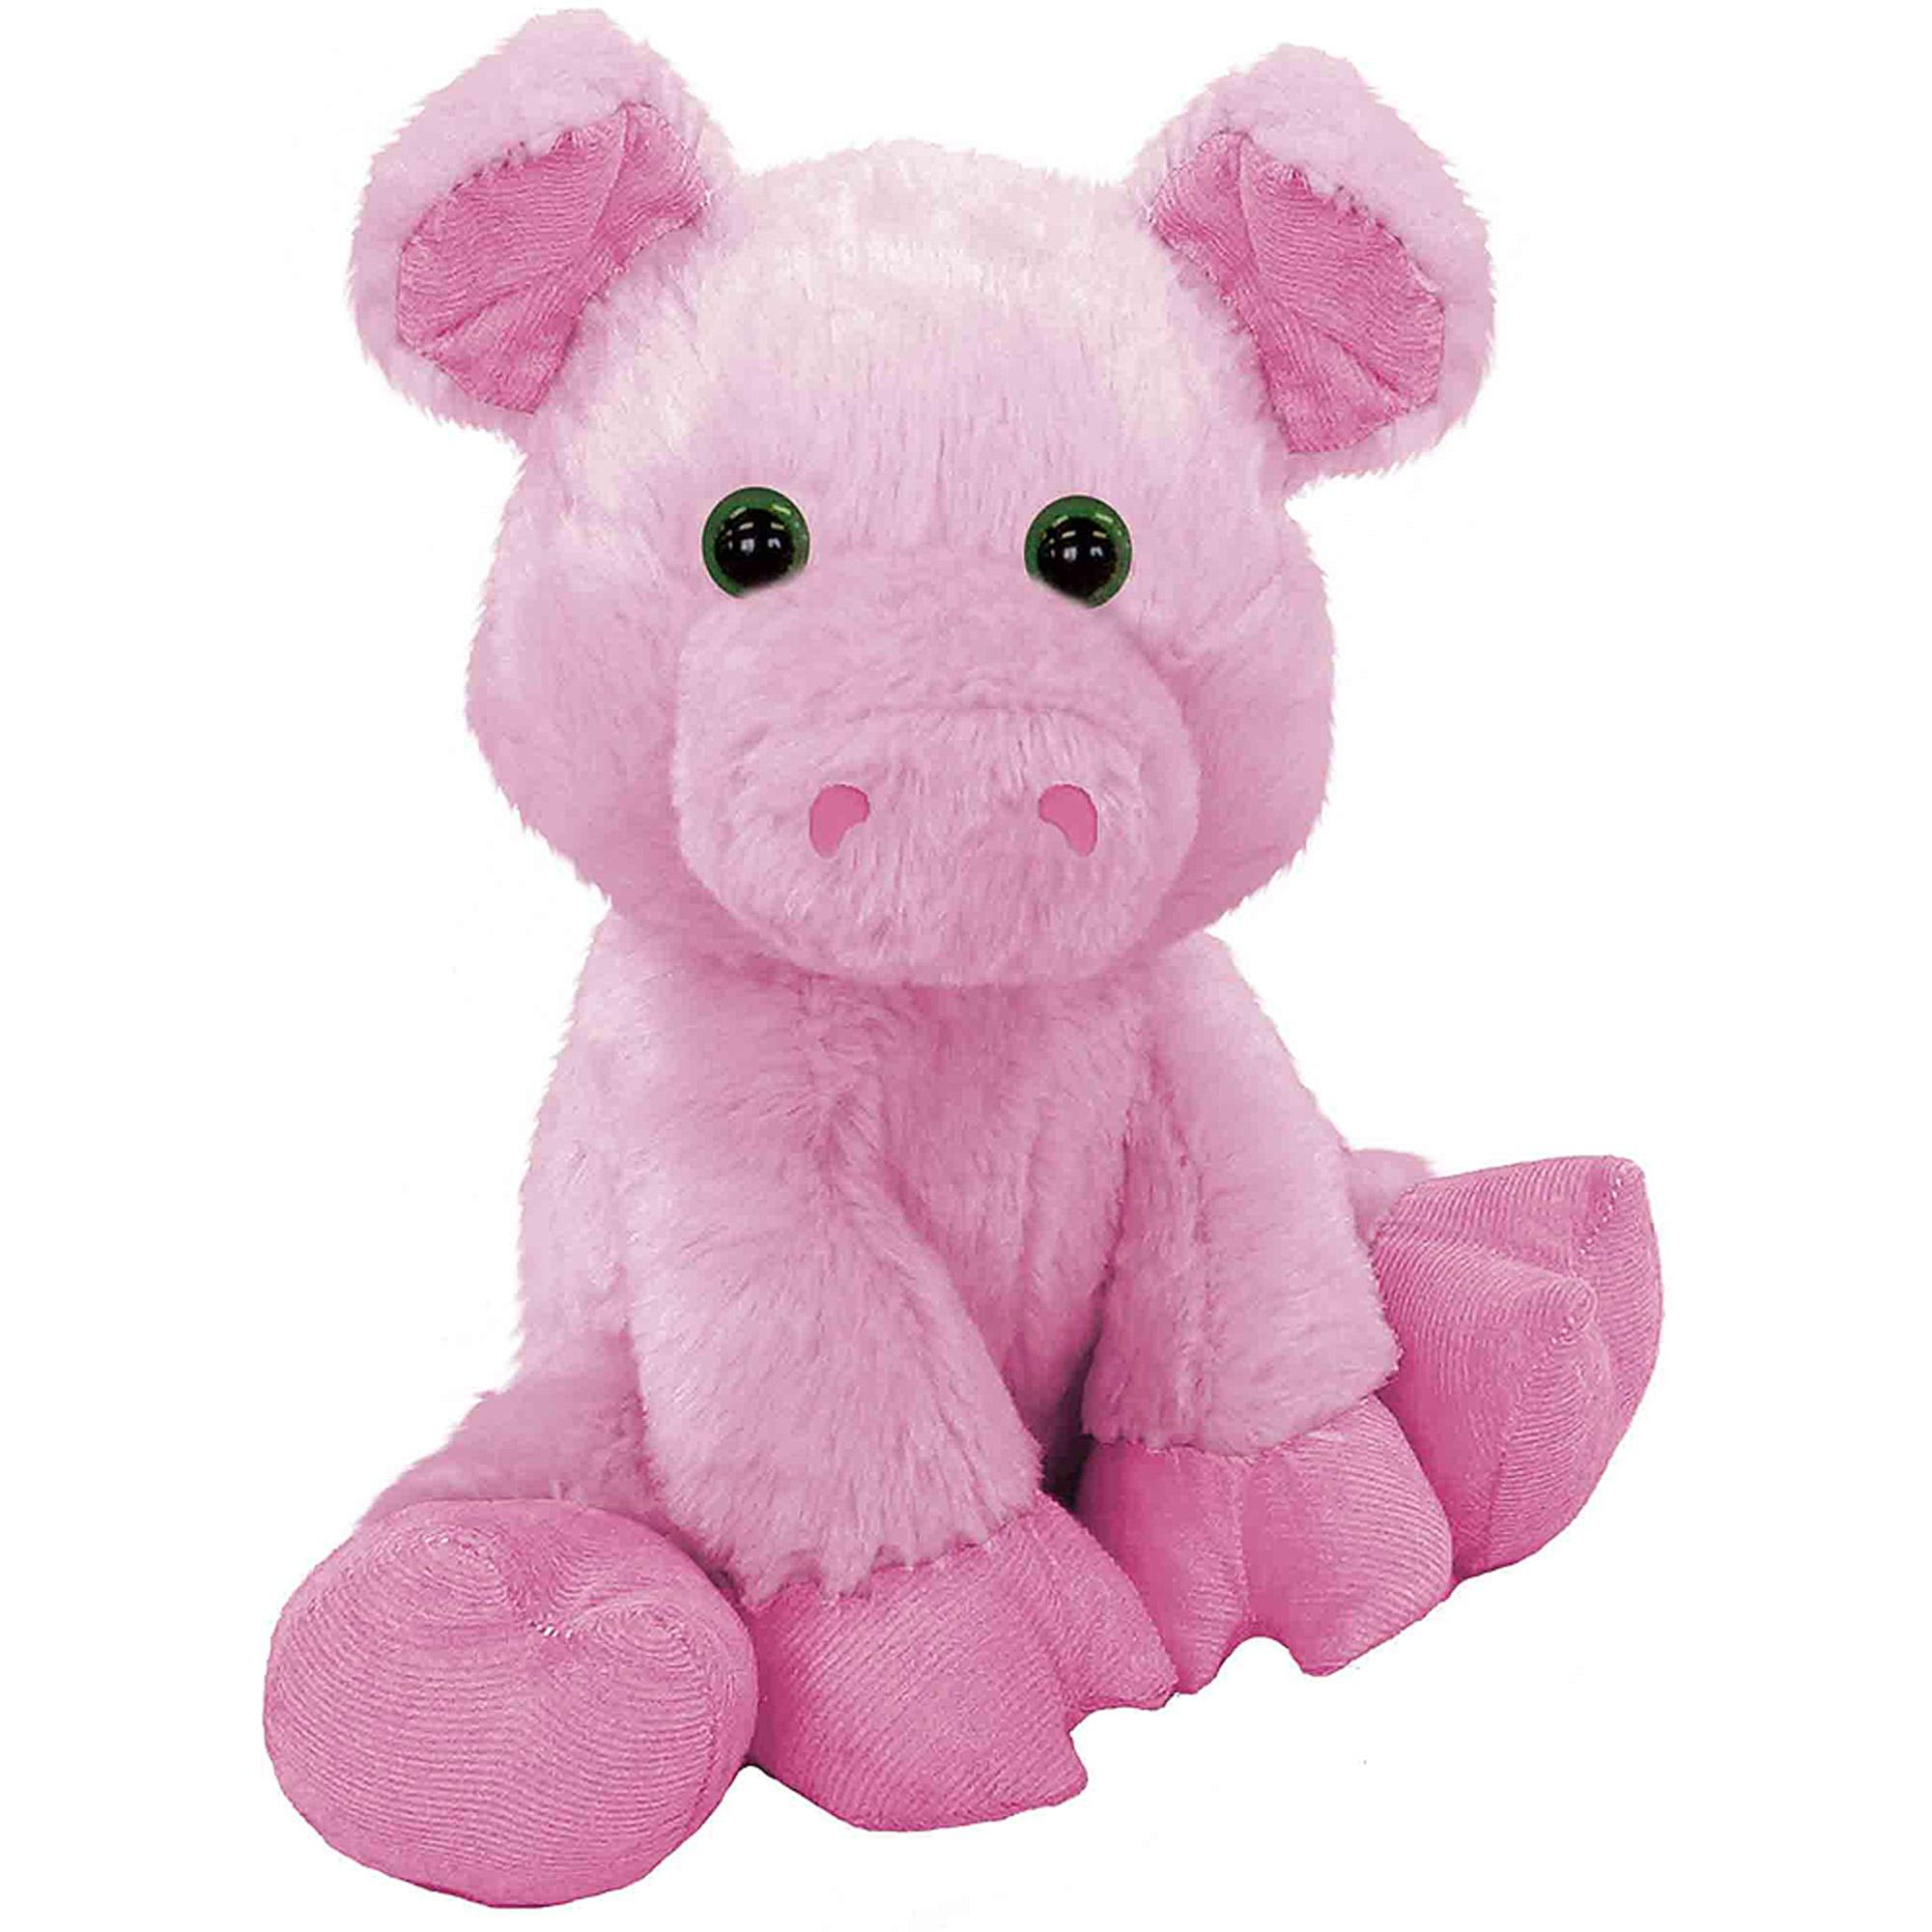 Cute Piglet  - Fully Customisable Plush